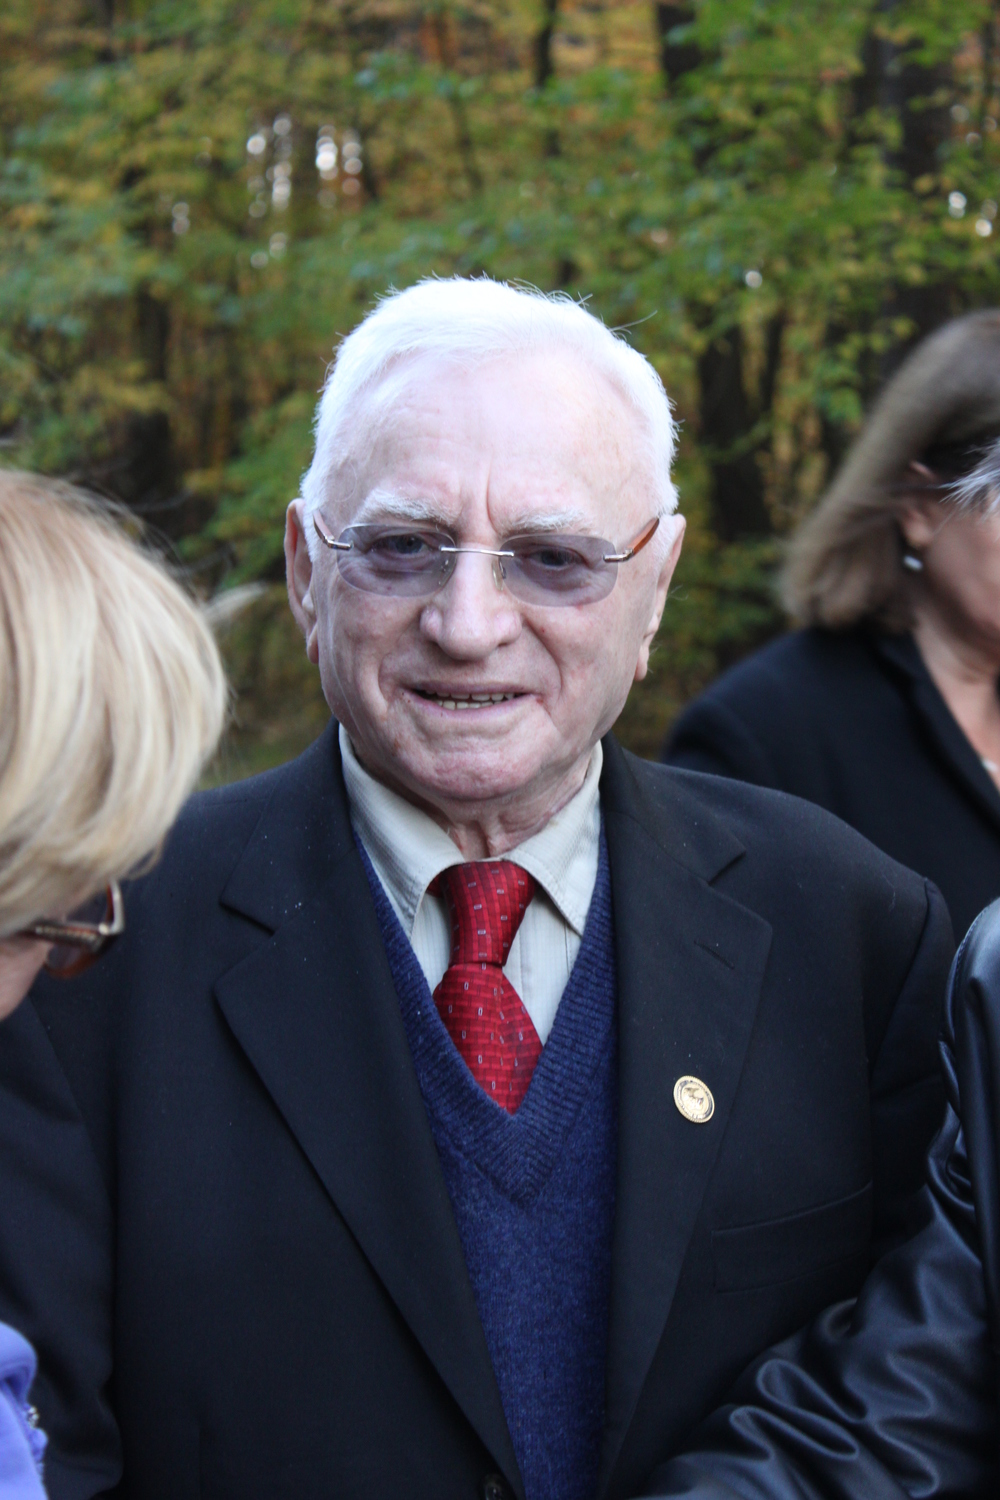 Thomas Blatt visiting the site of the Sobibor Holocaust death camp in 2013. Credit: Wikimedia Commons.